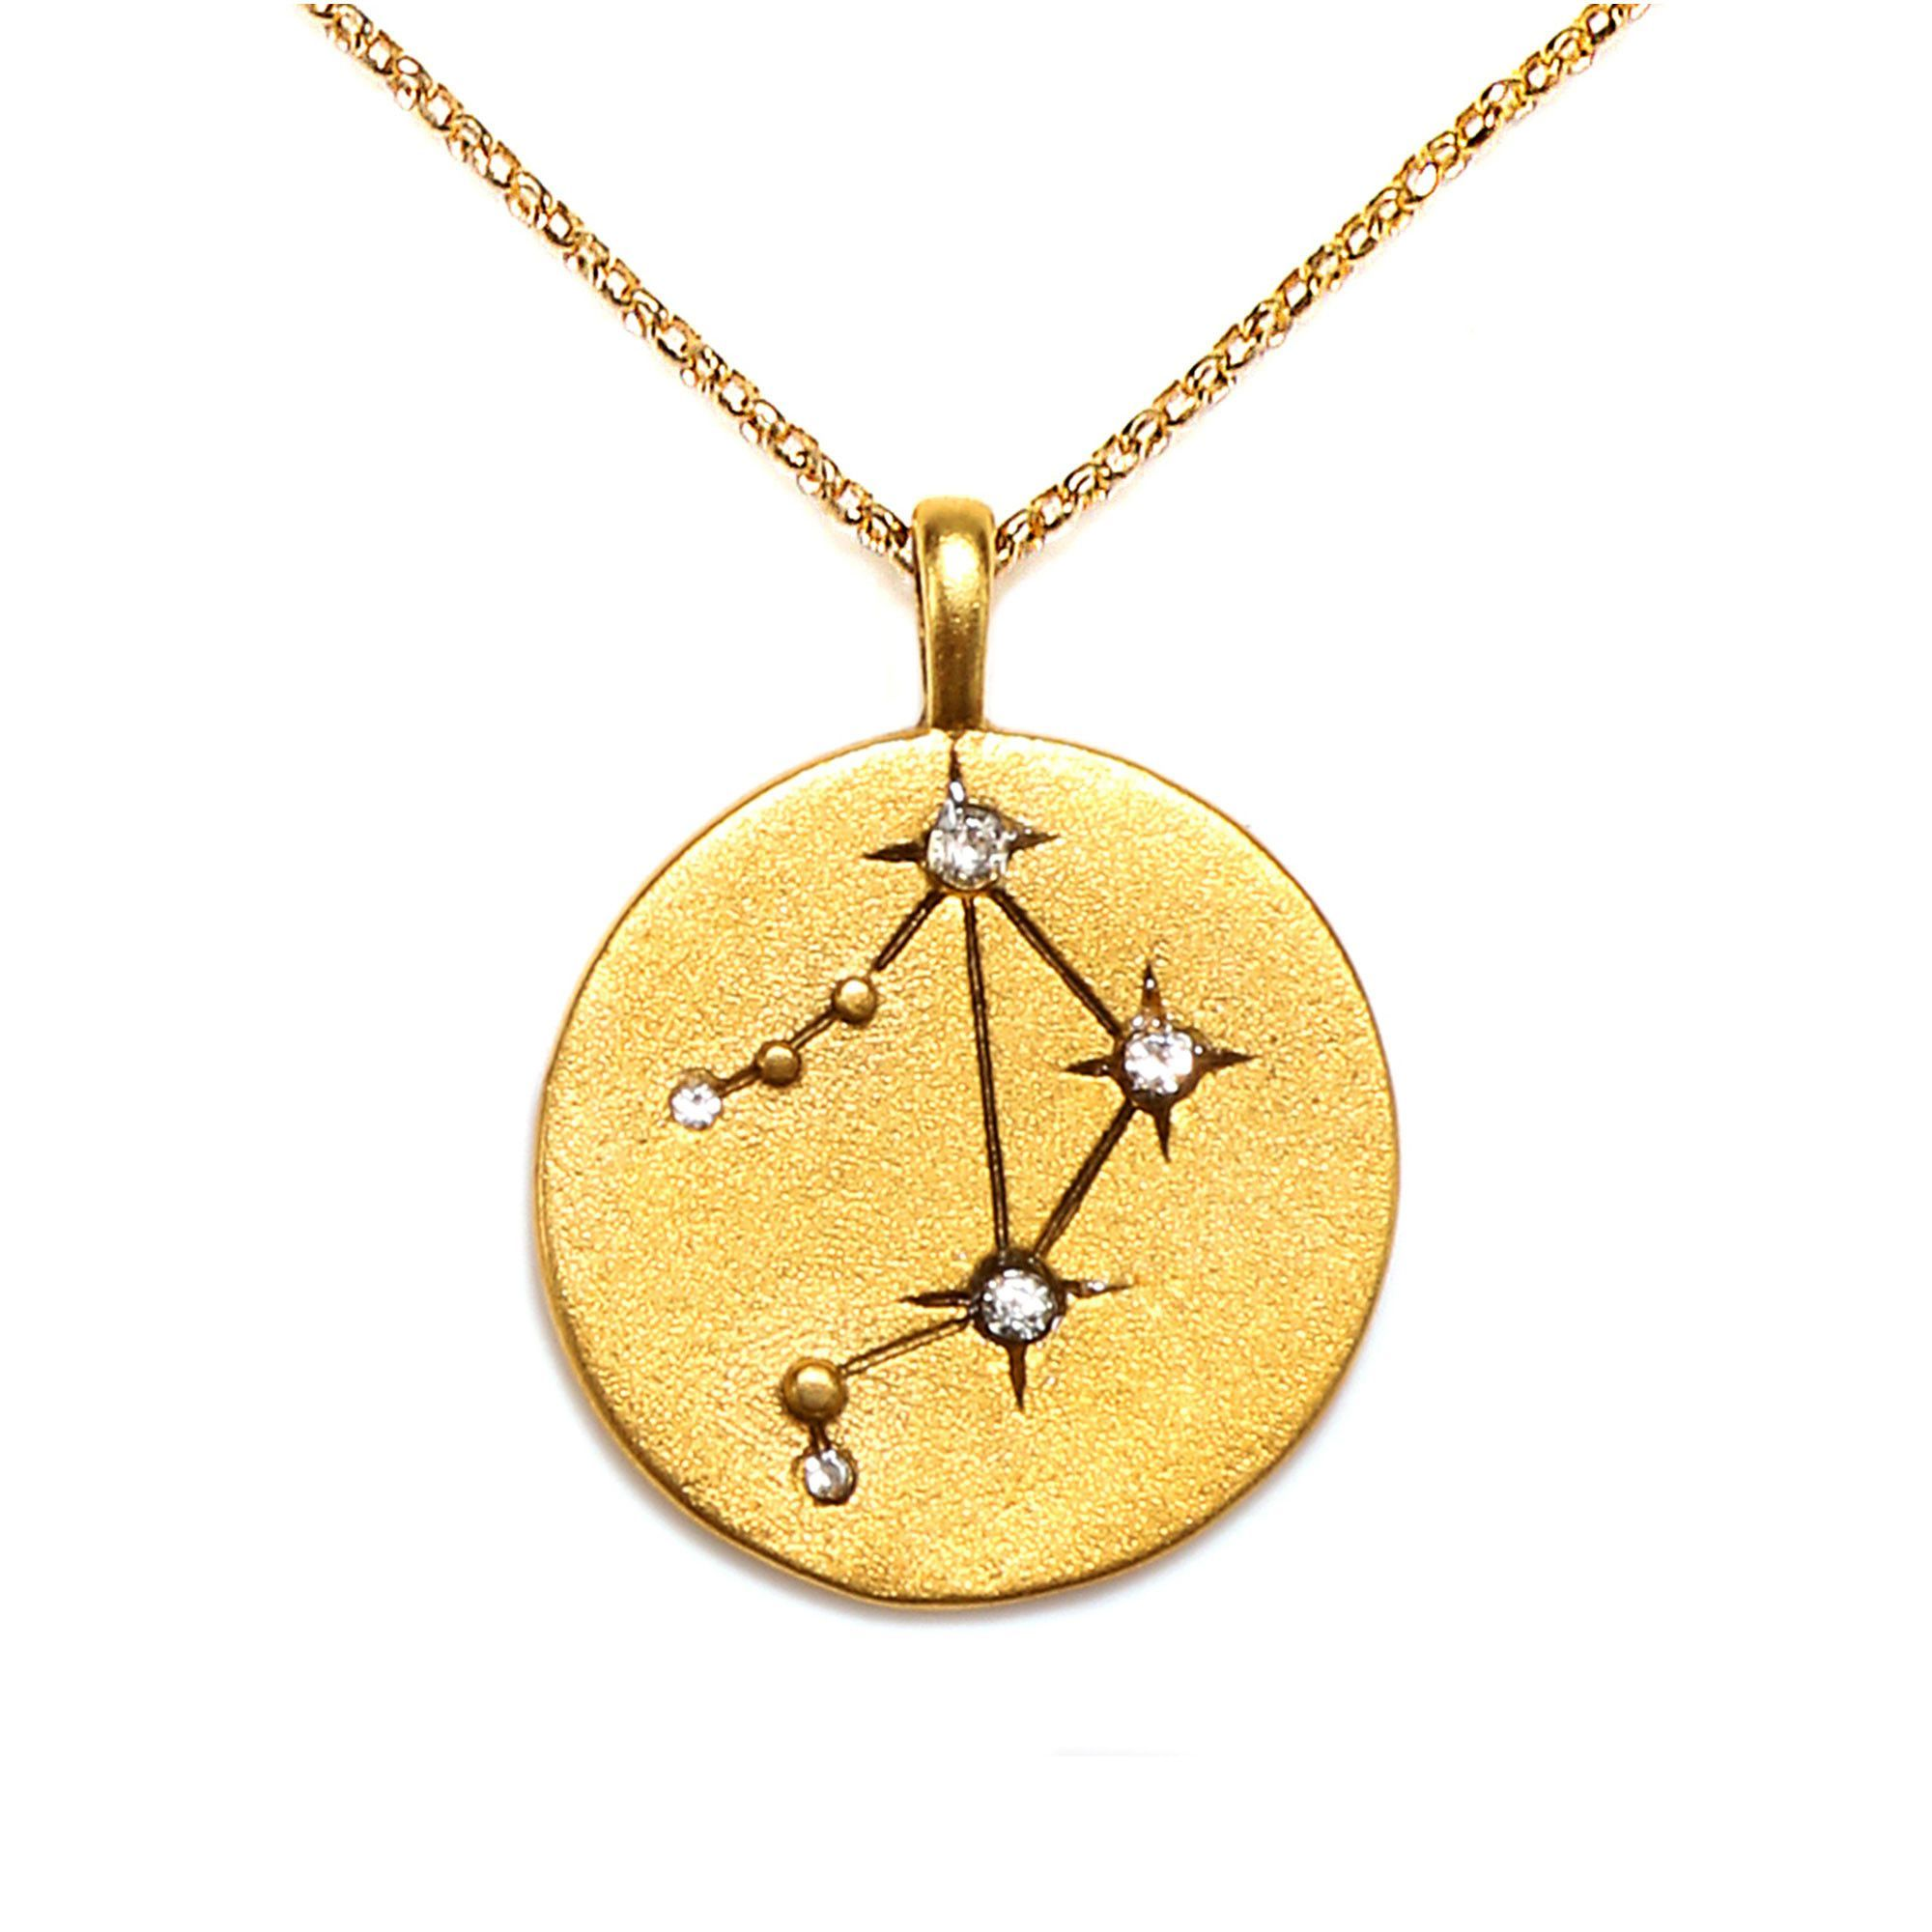 october to september jewellery libra uk fine astrology necklace necklaces new web